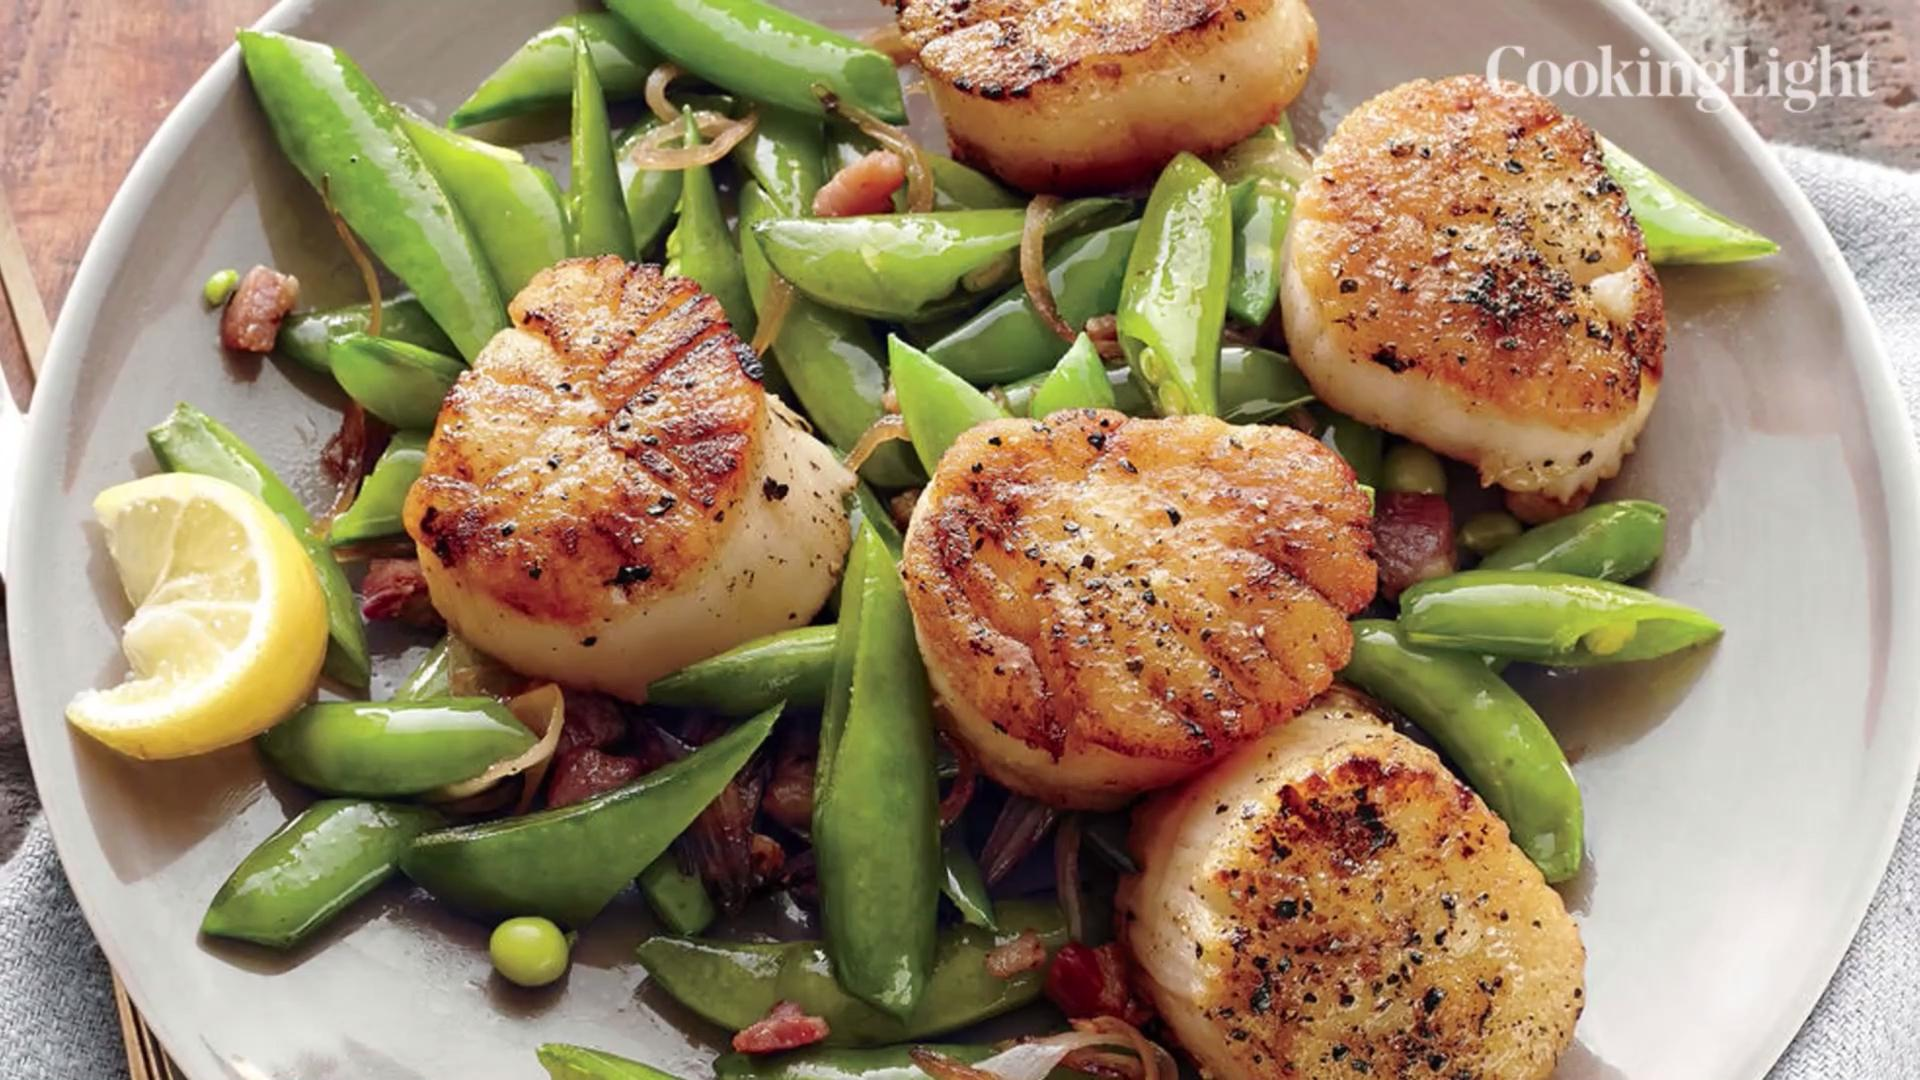 25 Quick and Easy Scallop Recipes That Are Perfect for Weeknight Dinners